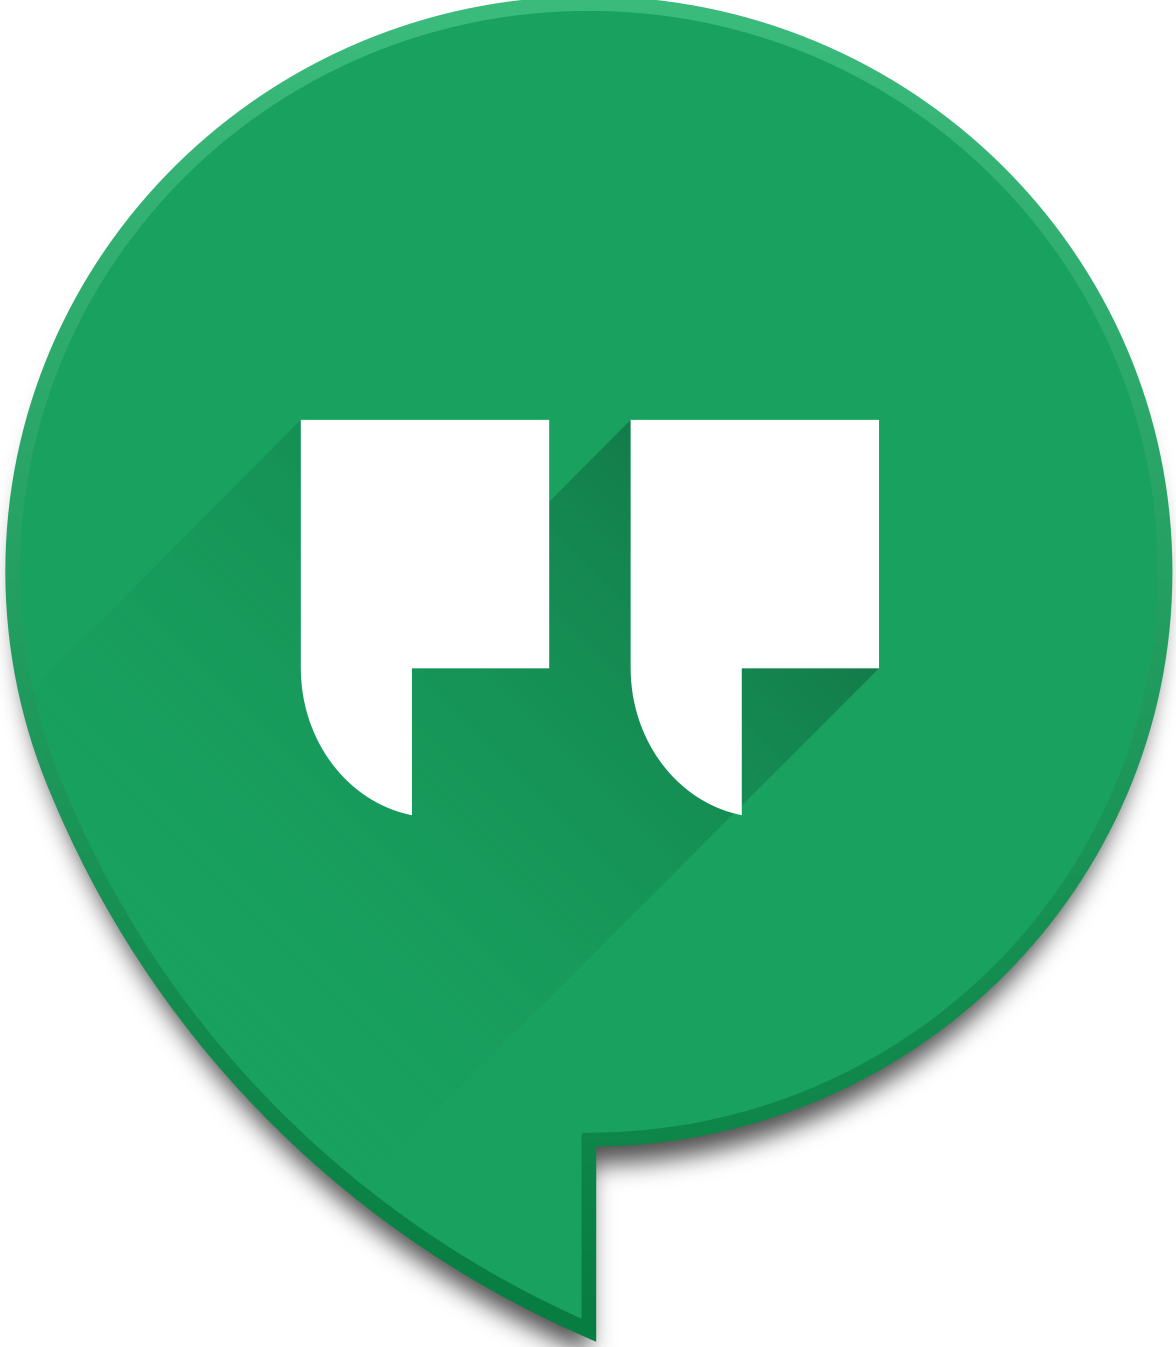 *** Google Hangouts-On-Air has been discontinued ***